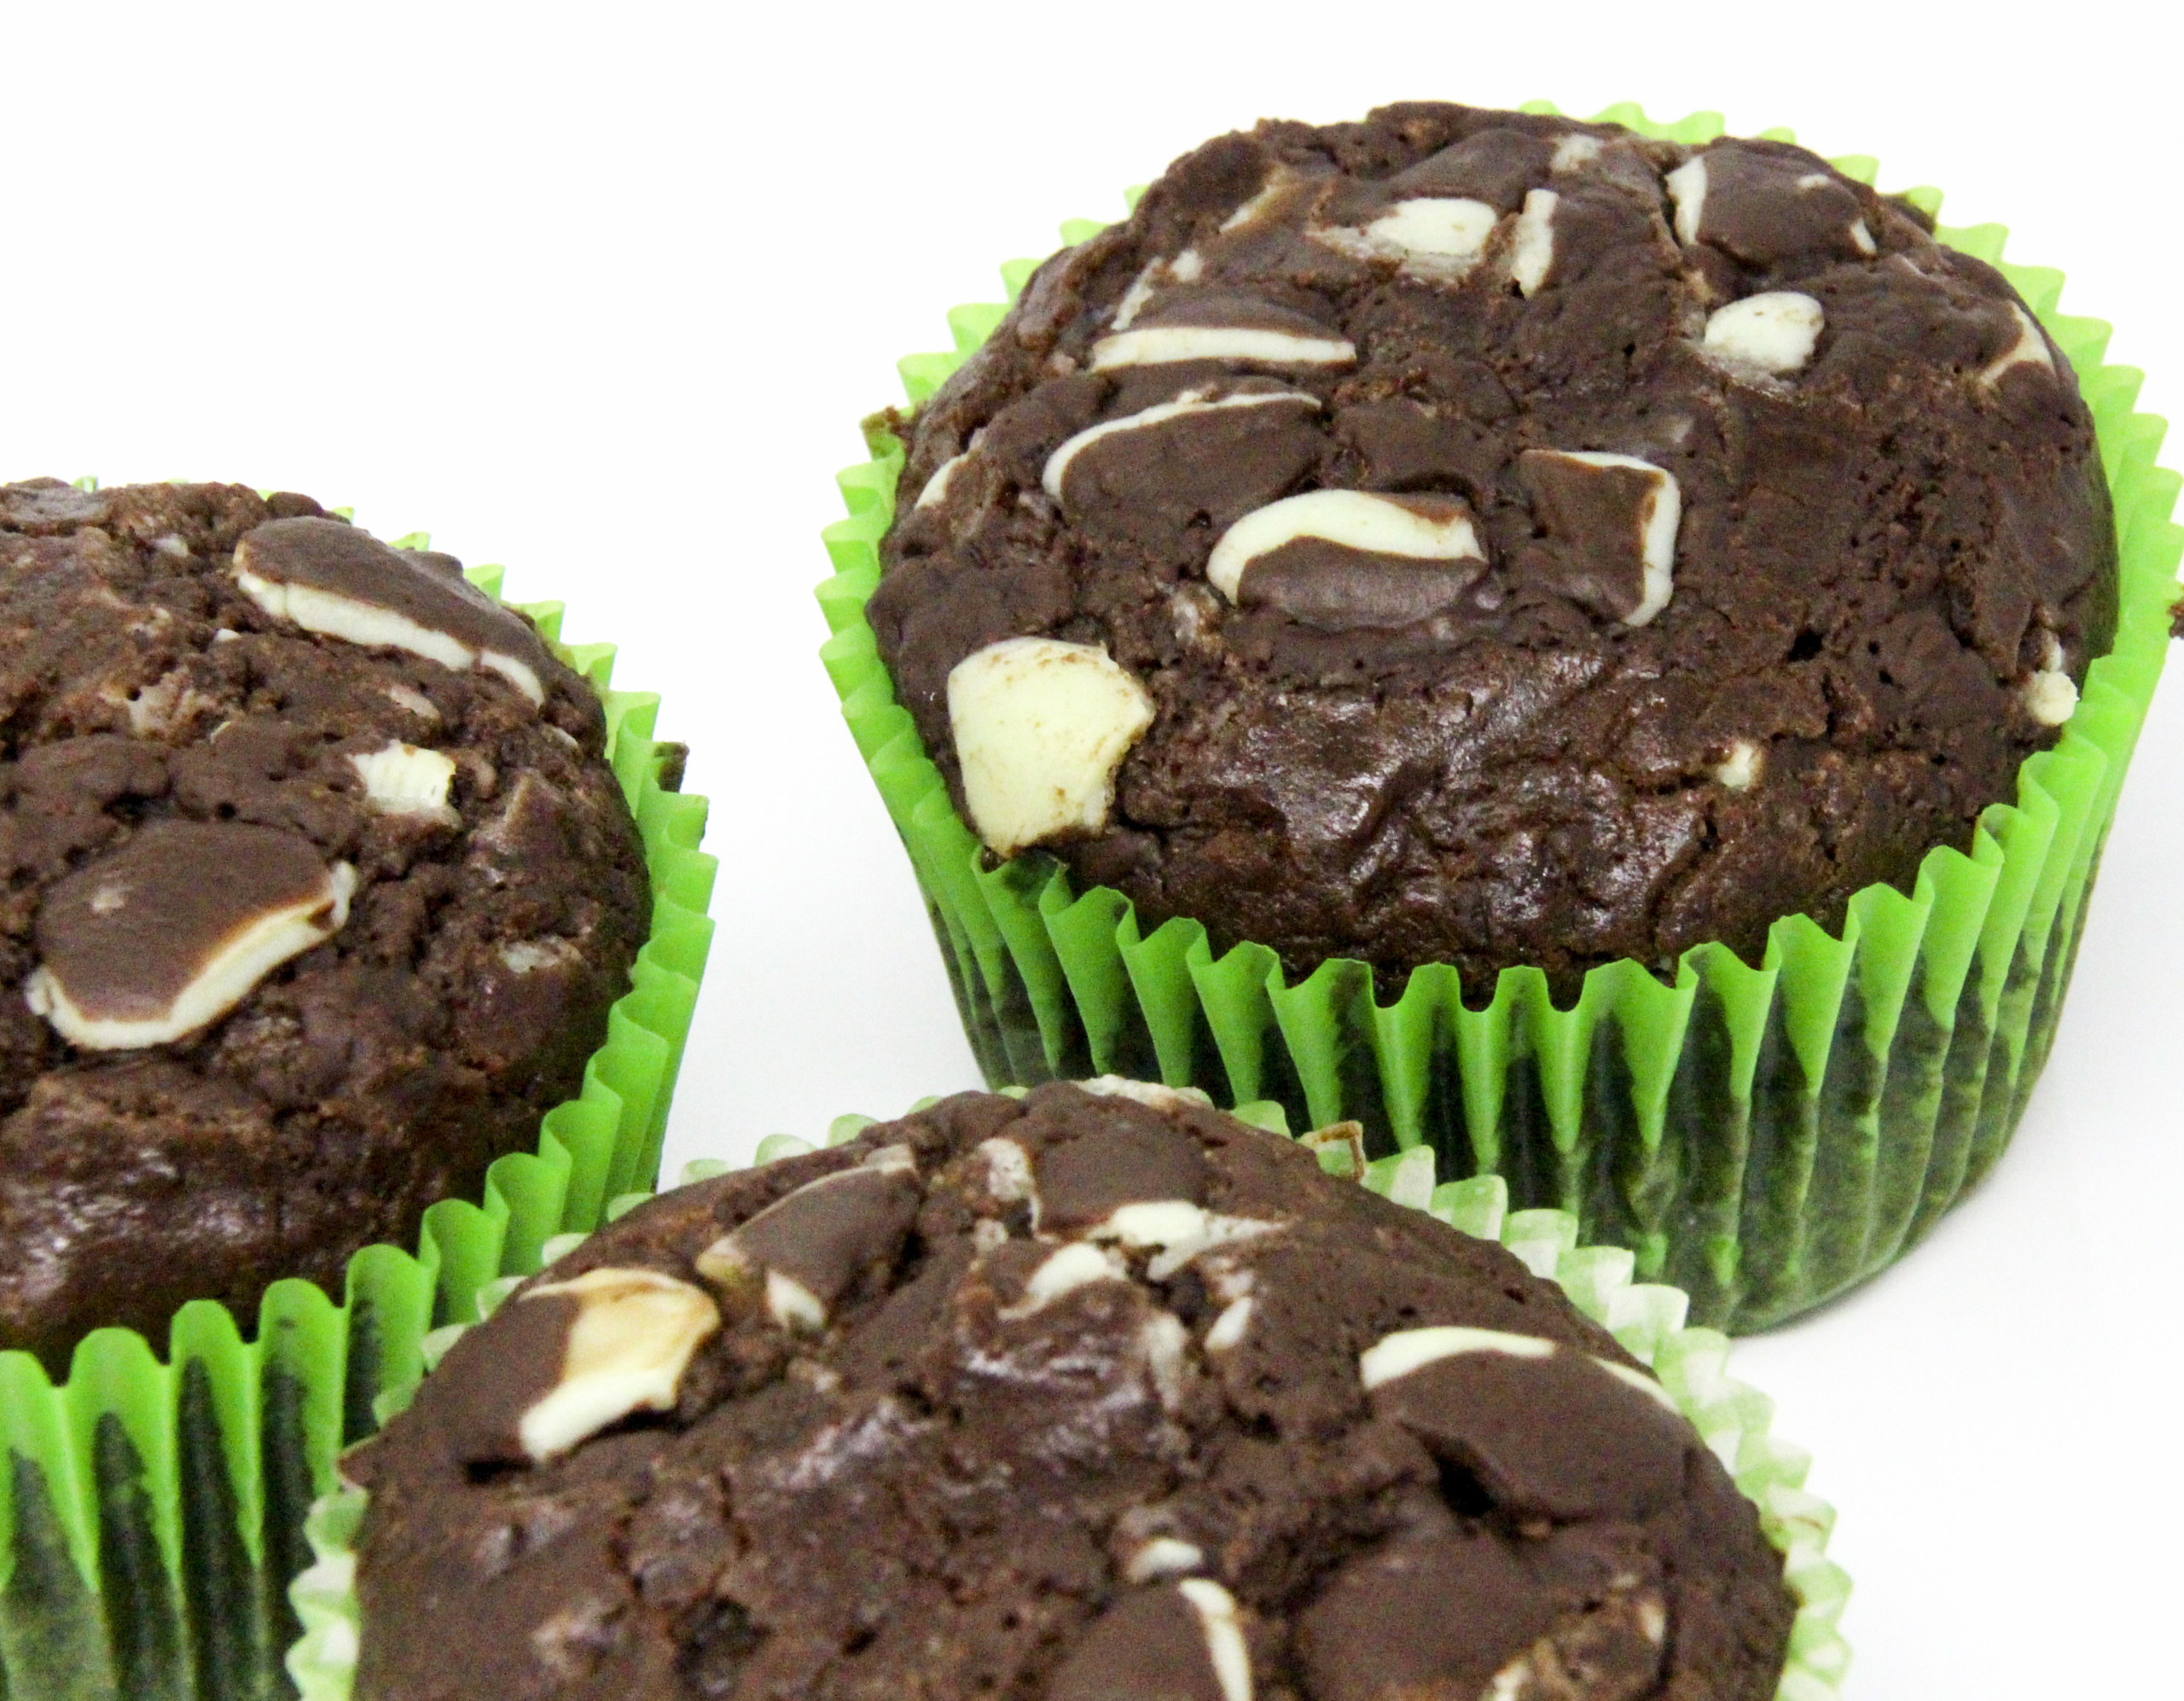 With a generous portion of of both cocoa powder and Andes Chocolate Mints, these rich Chocolate Mint Muffins could very well be classified as dessert cupcakes since they're so scrumptious! Recipe shared with permission granted by Daryl Wood Gerber, author of WINING AND DYING.